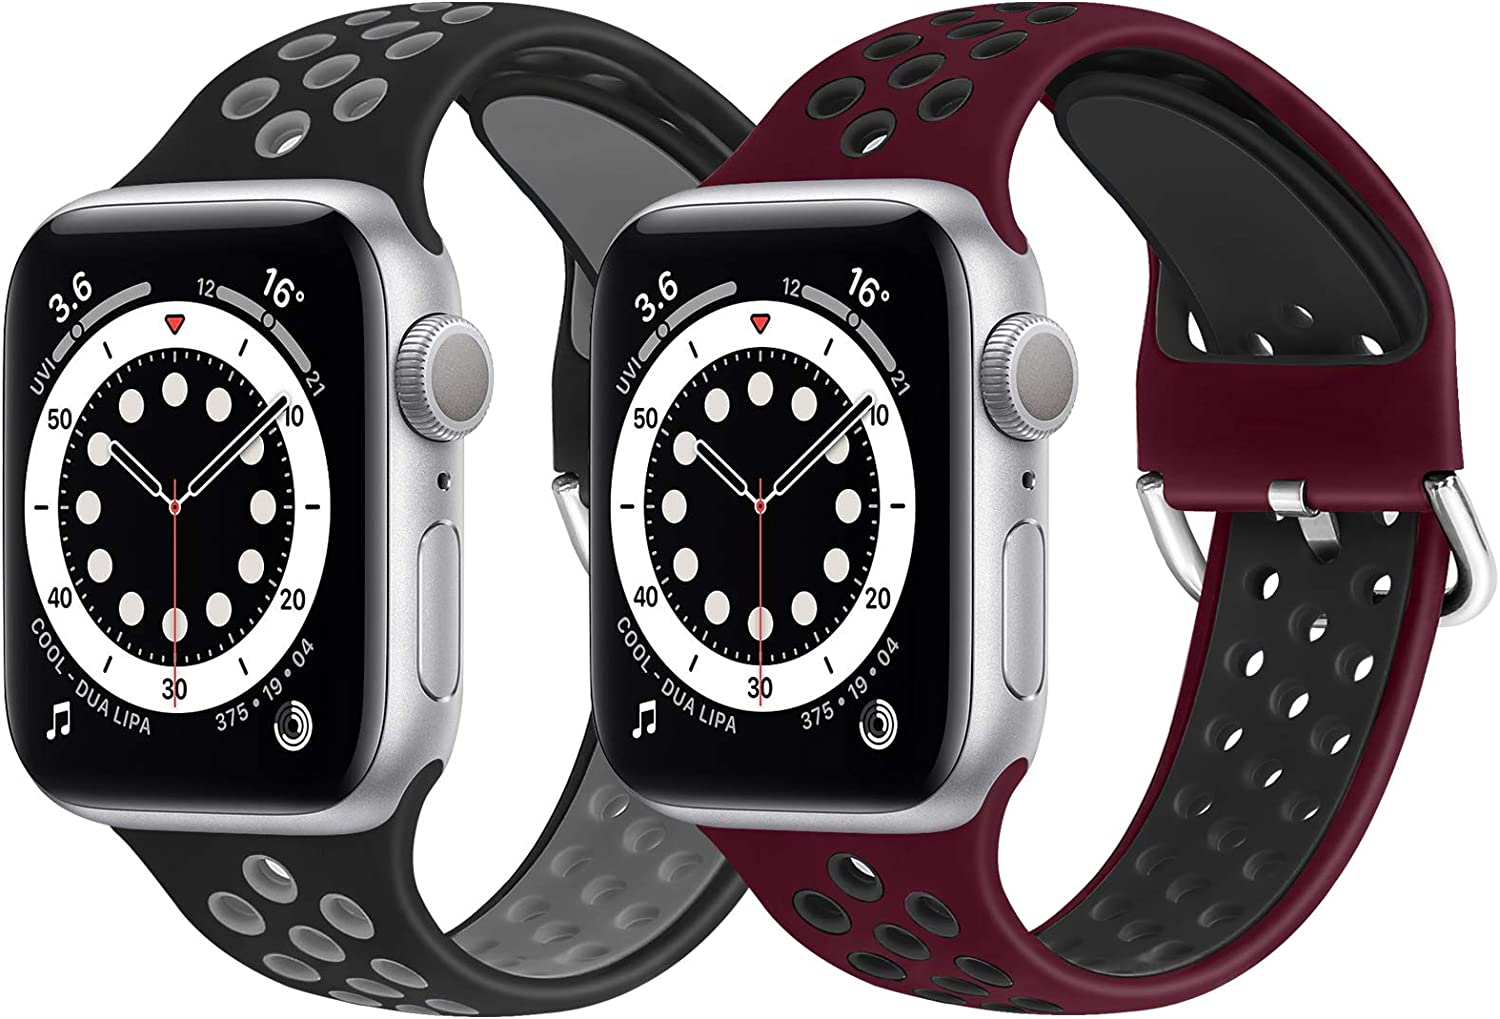 WNIPH Silicone Sports Bands Compatible with Apple Watch Band 38mm 40mm, Soft Breathable Silicone Straps Replacement Wristband for iwatch Series 6/5/4/3/2/1/SE(Black Grey+Wine Red Black, 38mm/40mm M/L)